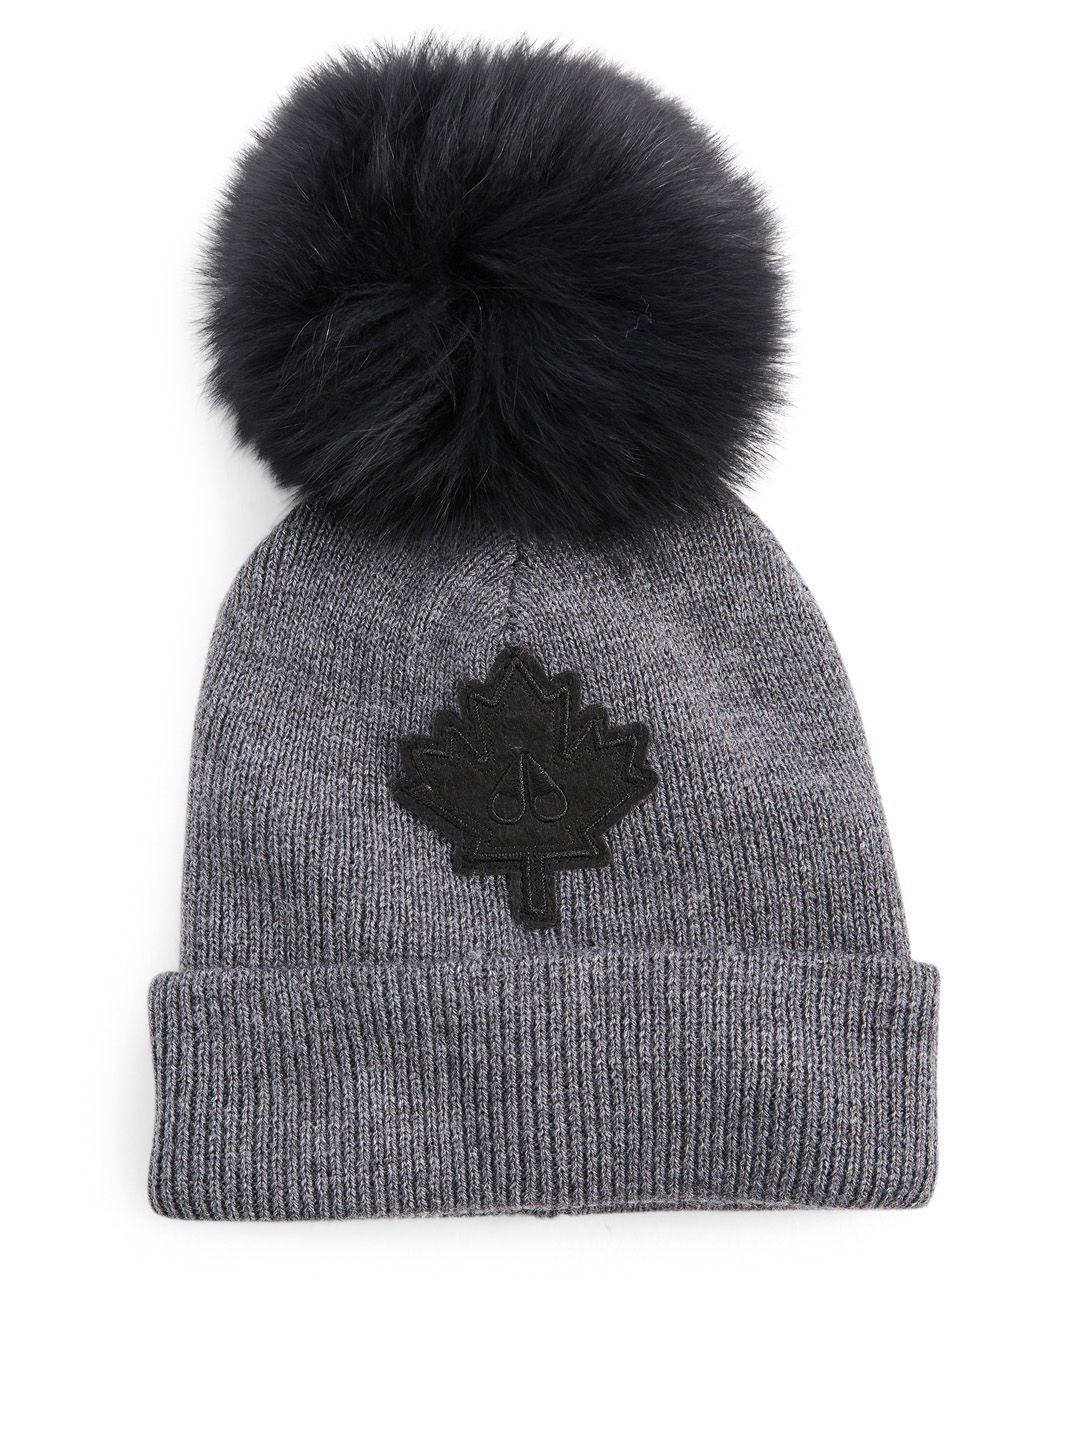 MOOSE KNUCKLES Moose Maple Leaf Toque With Fur Pom Womens Grey